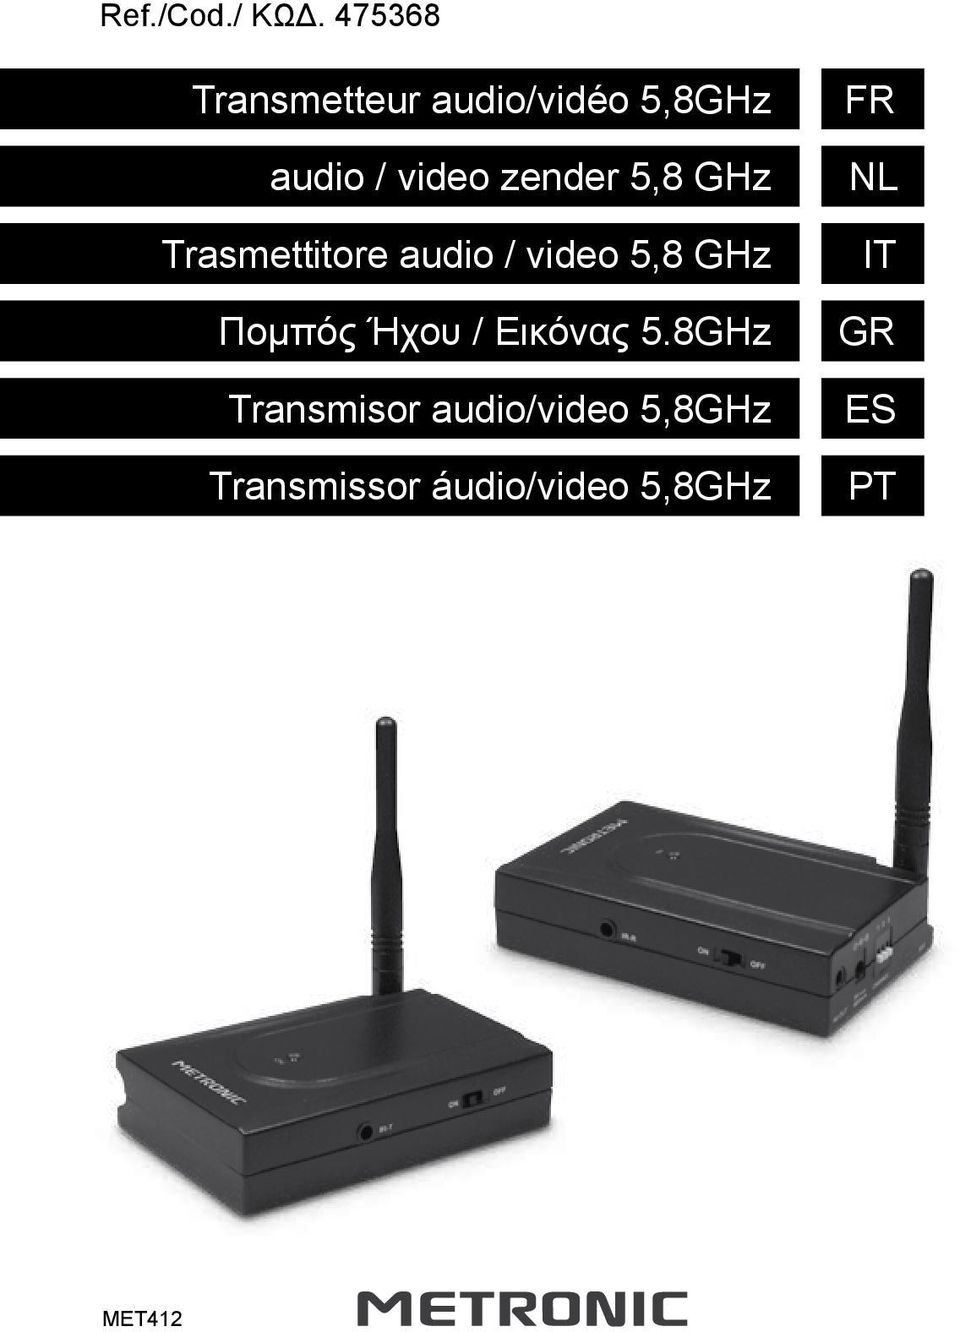 zender 5,8 GHz Trasmettitore audio / video 5,8 GHz Πομπός